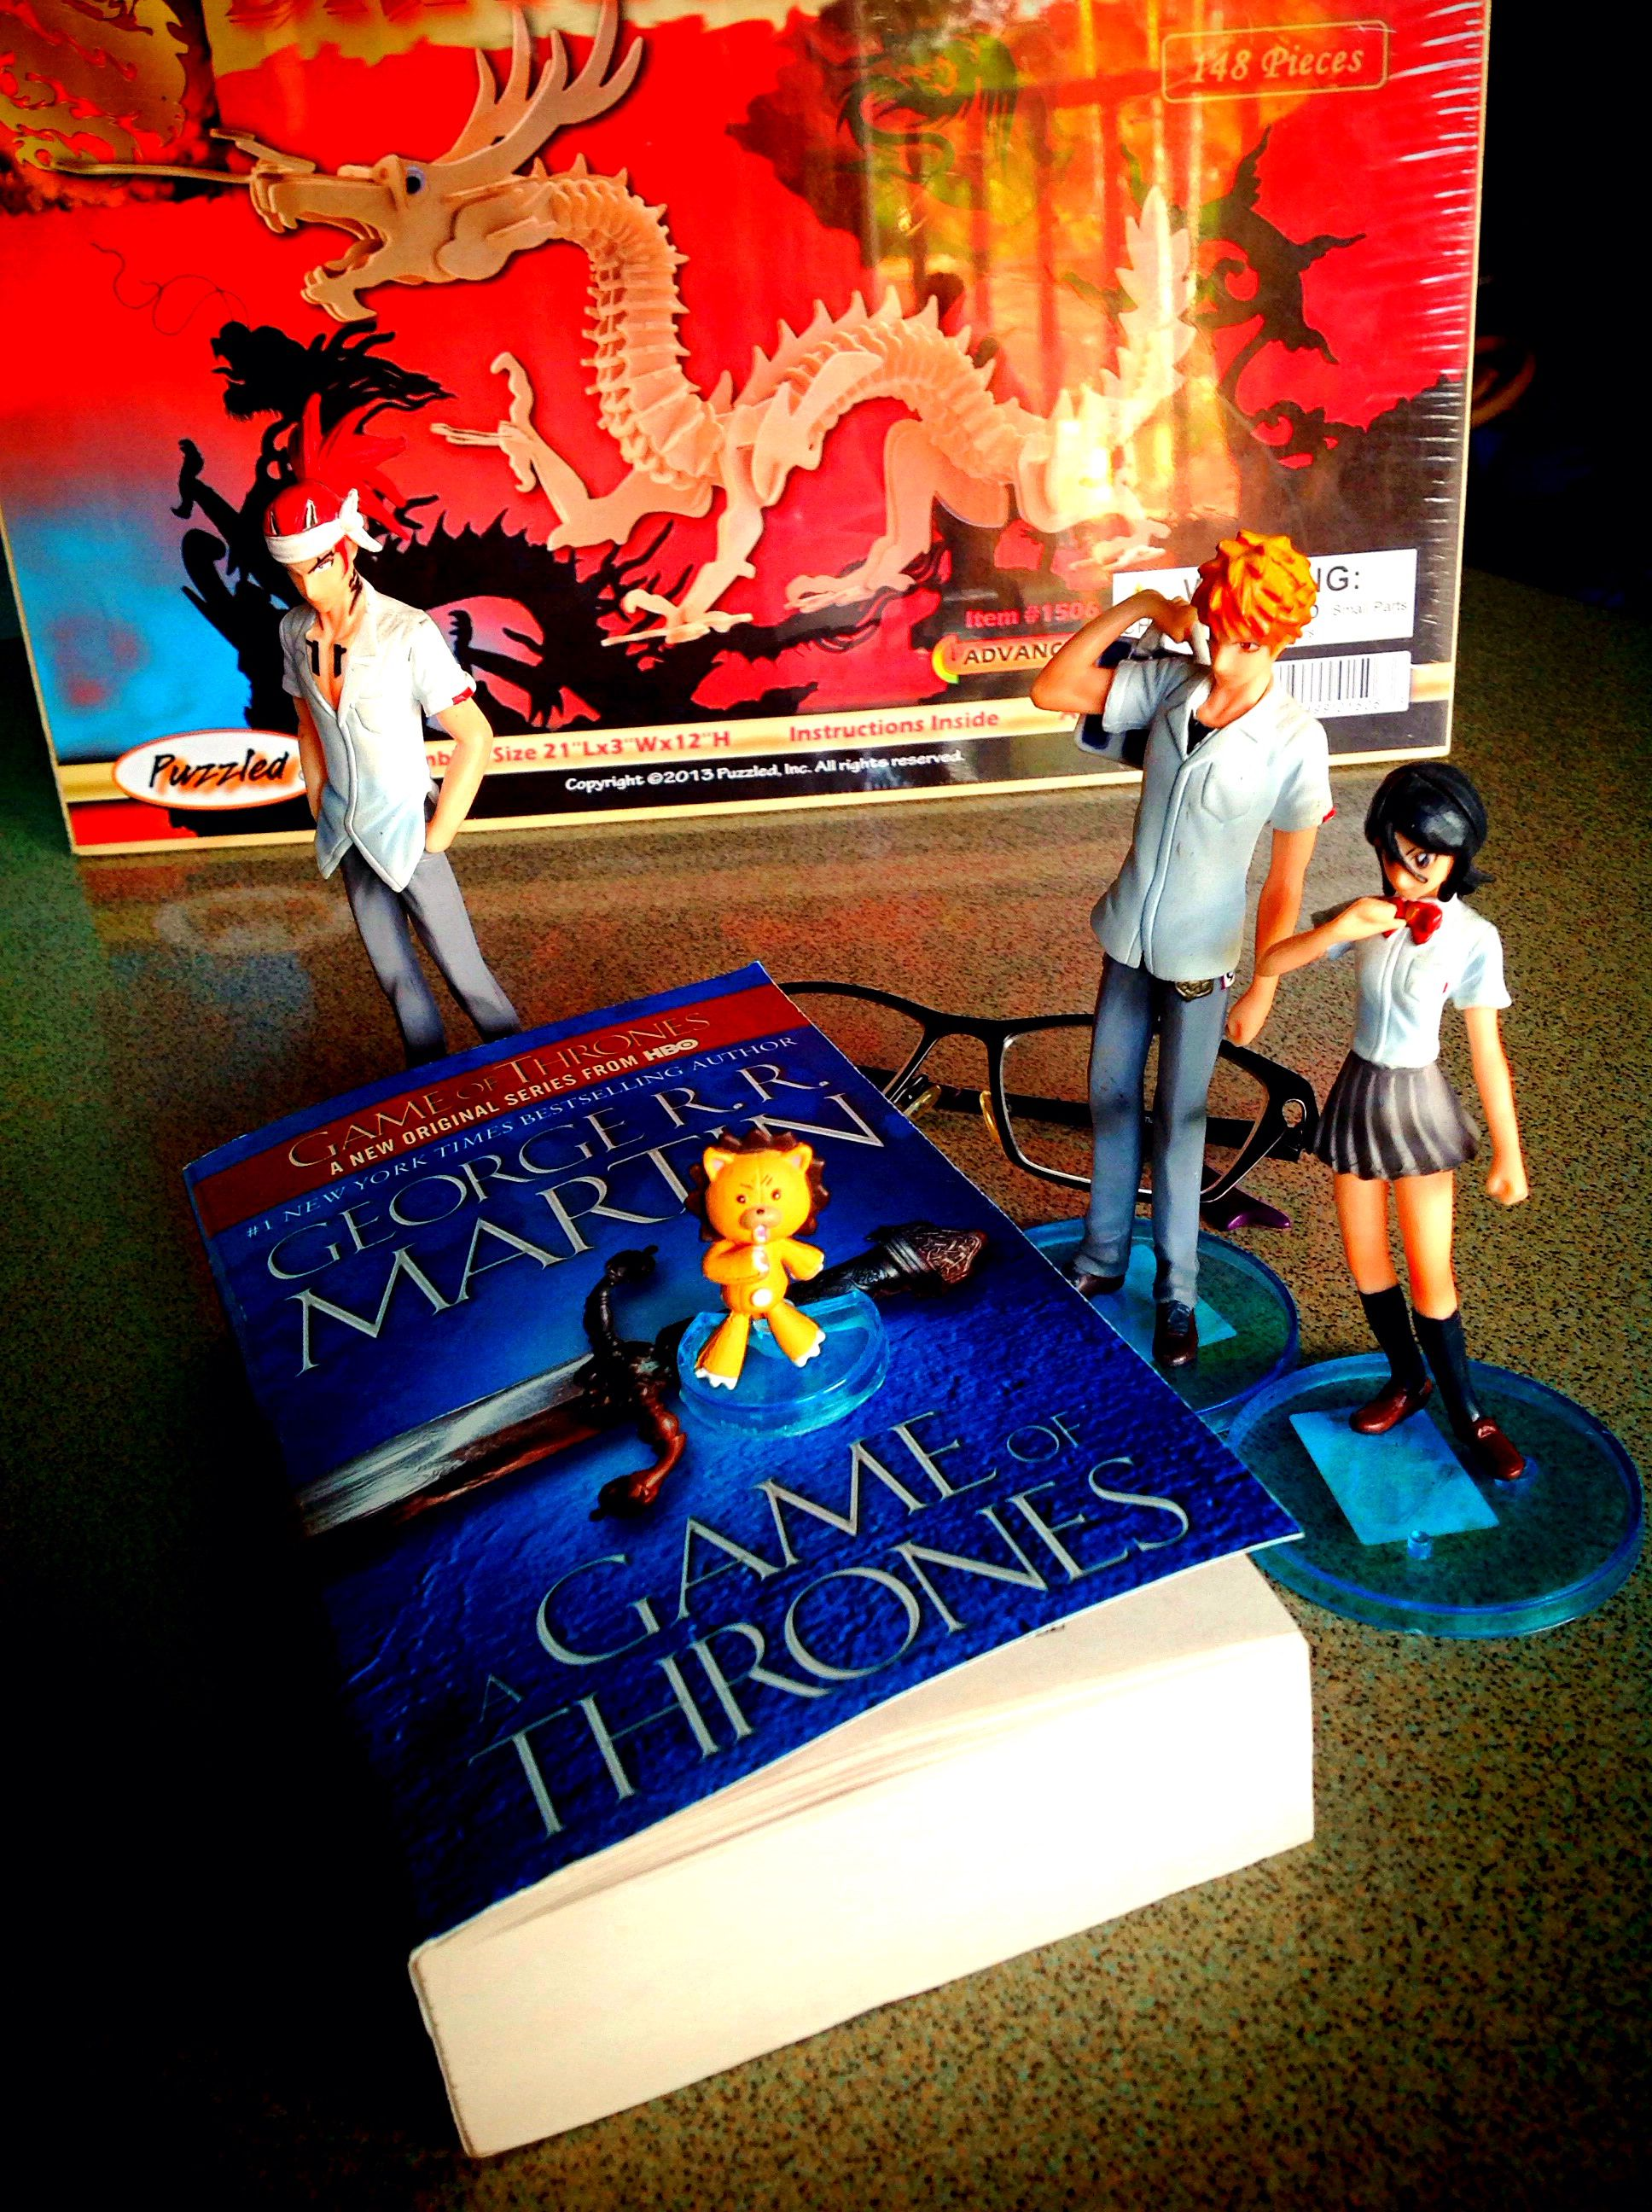 A Song Of Ice and Fire: Book One - Game of Thrones